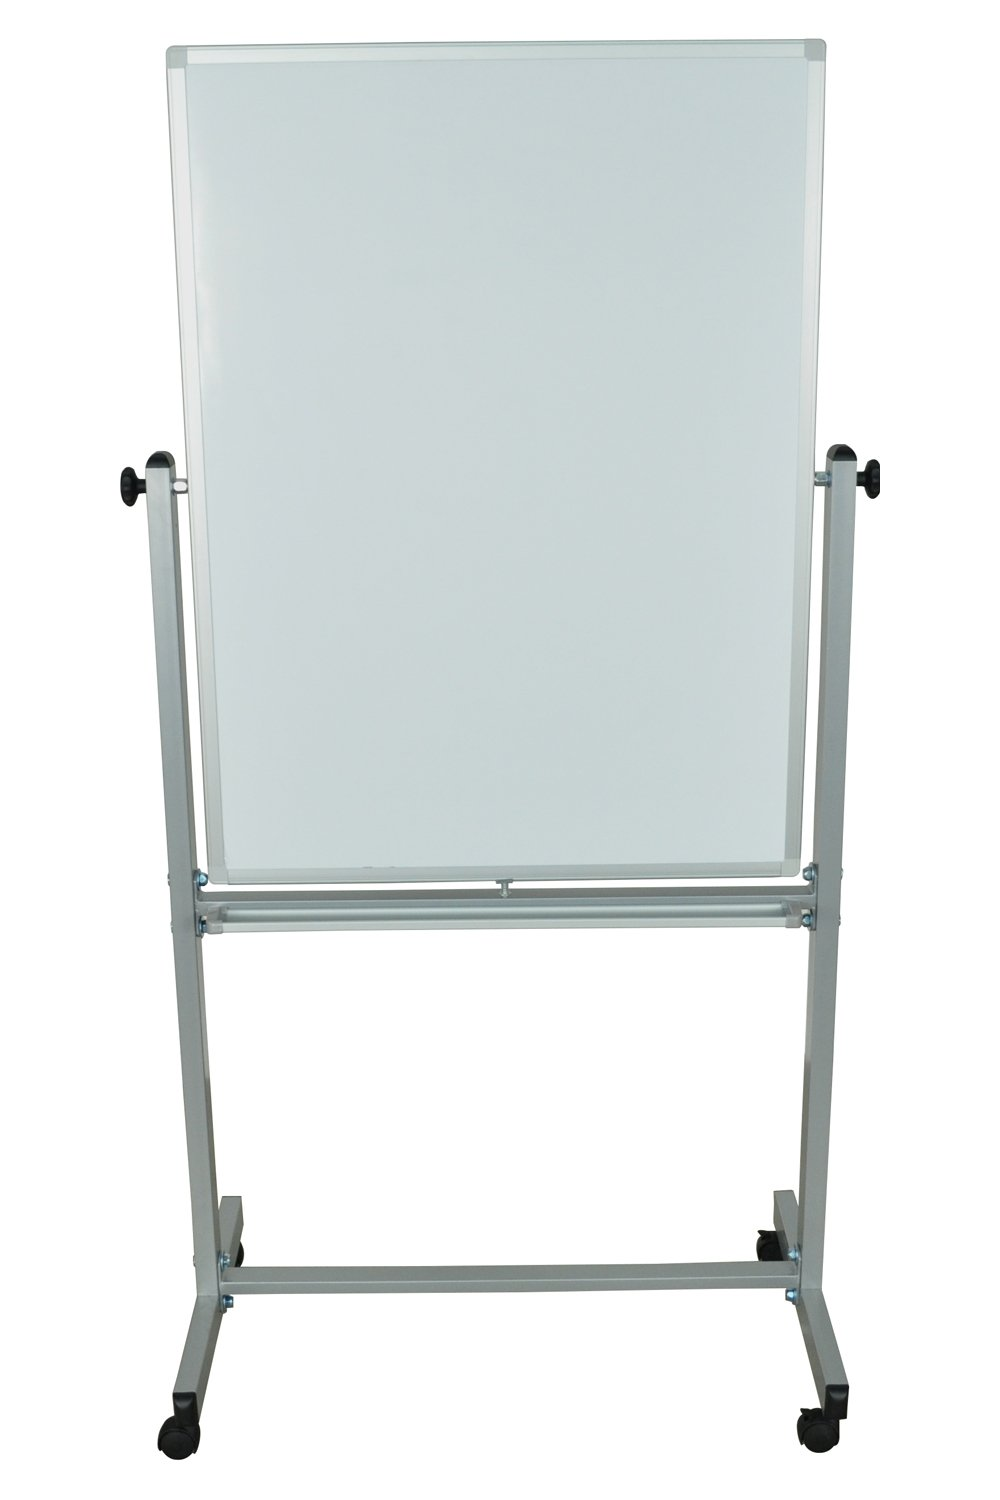 High-Life 30 X 40 Double Sided Magnetic Reversible White Board With Casters